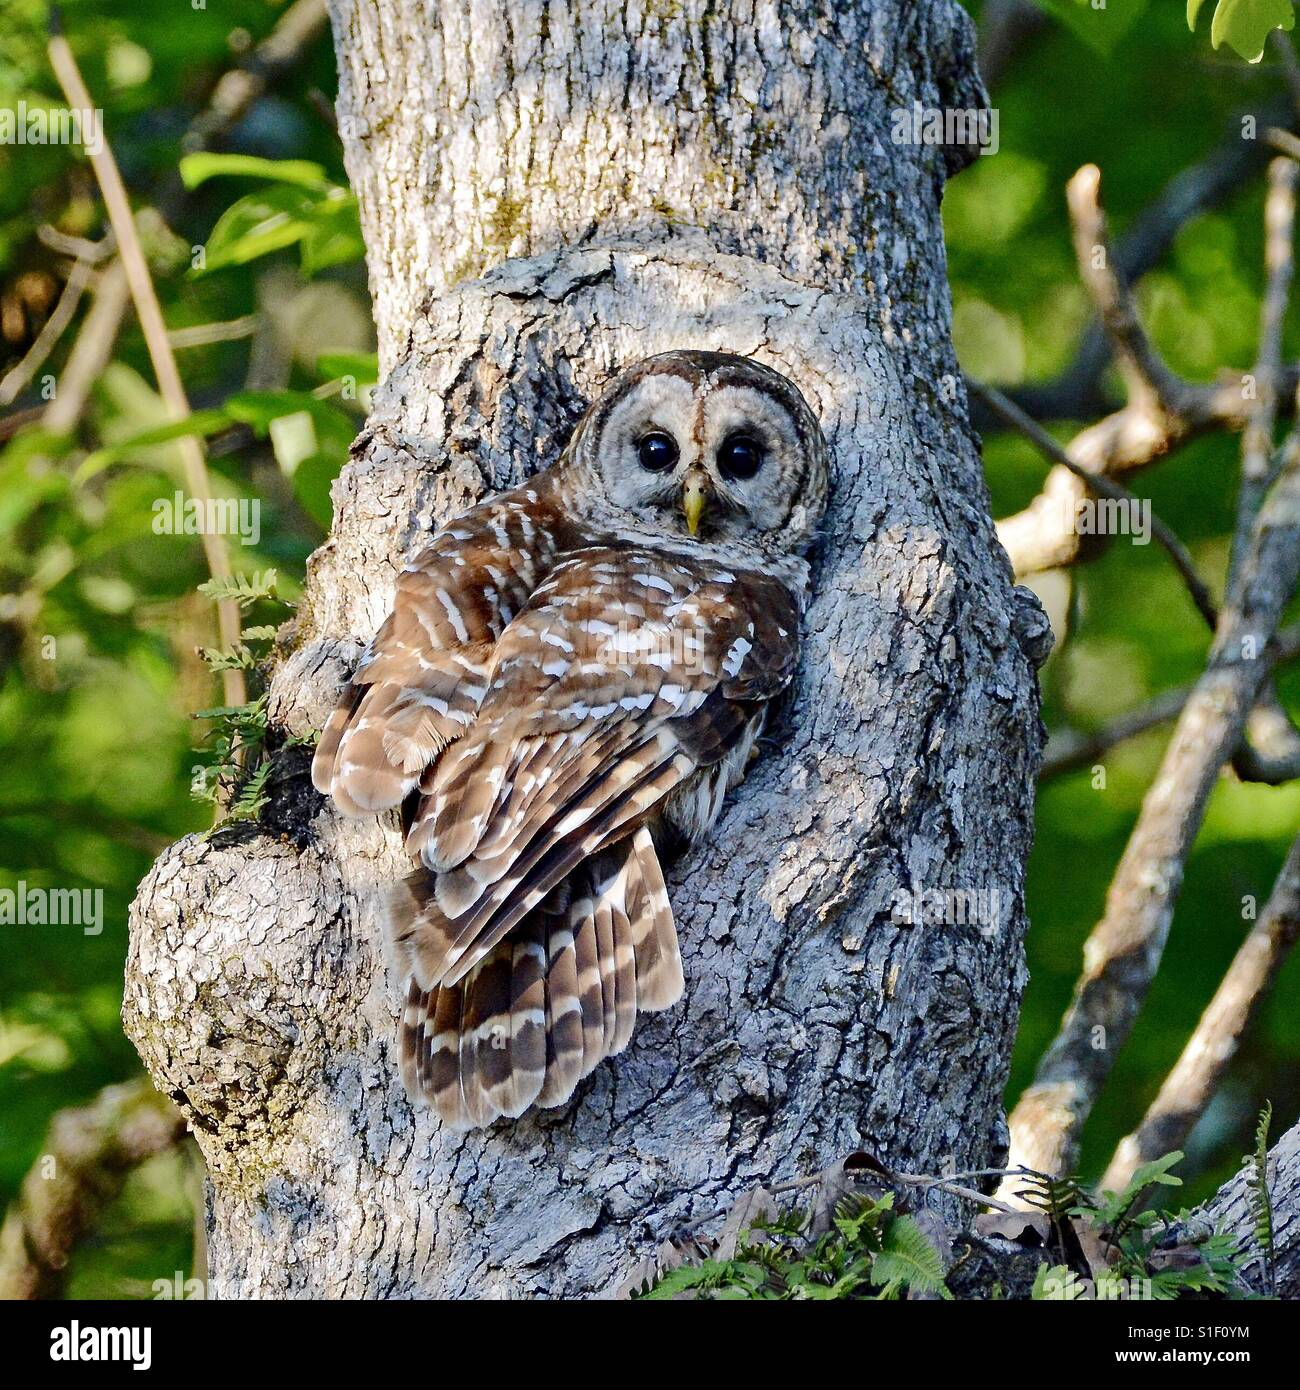 A Barred owl perched over its nesting hole in a white oak tree in North Alabama - Stock Image